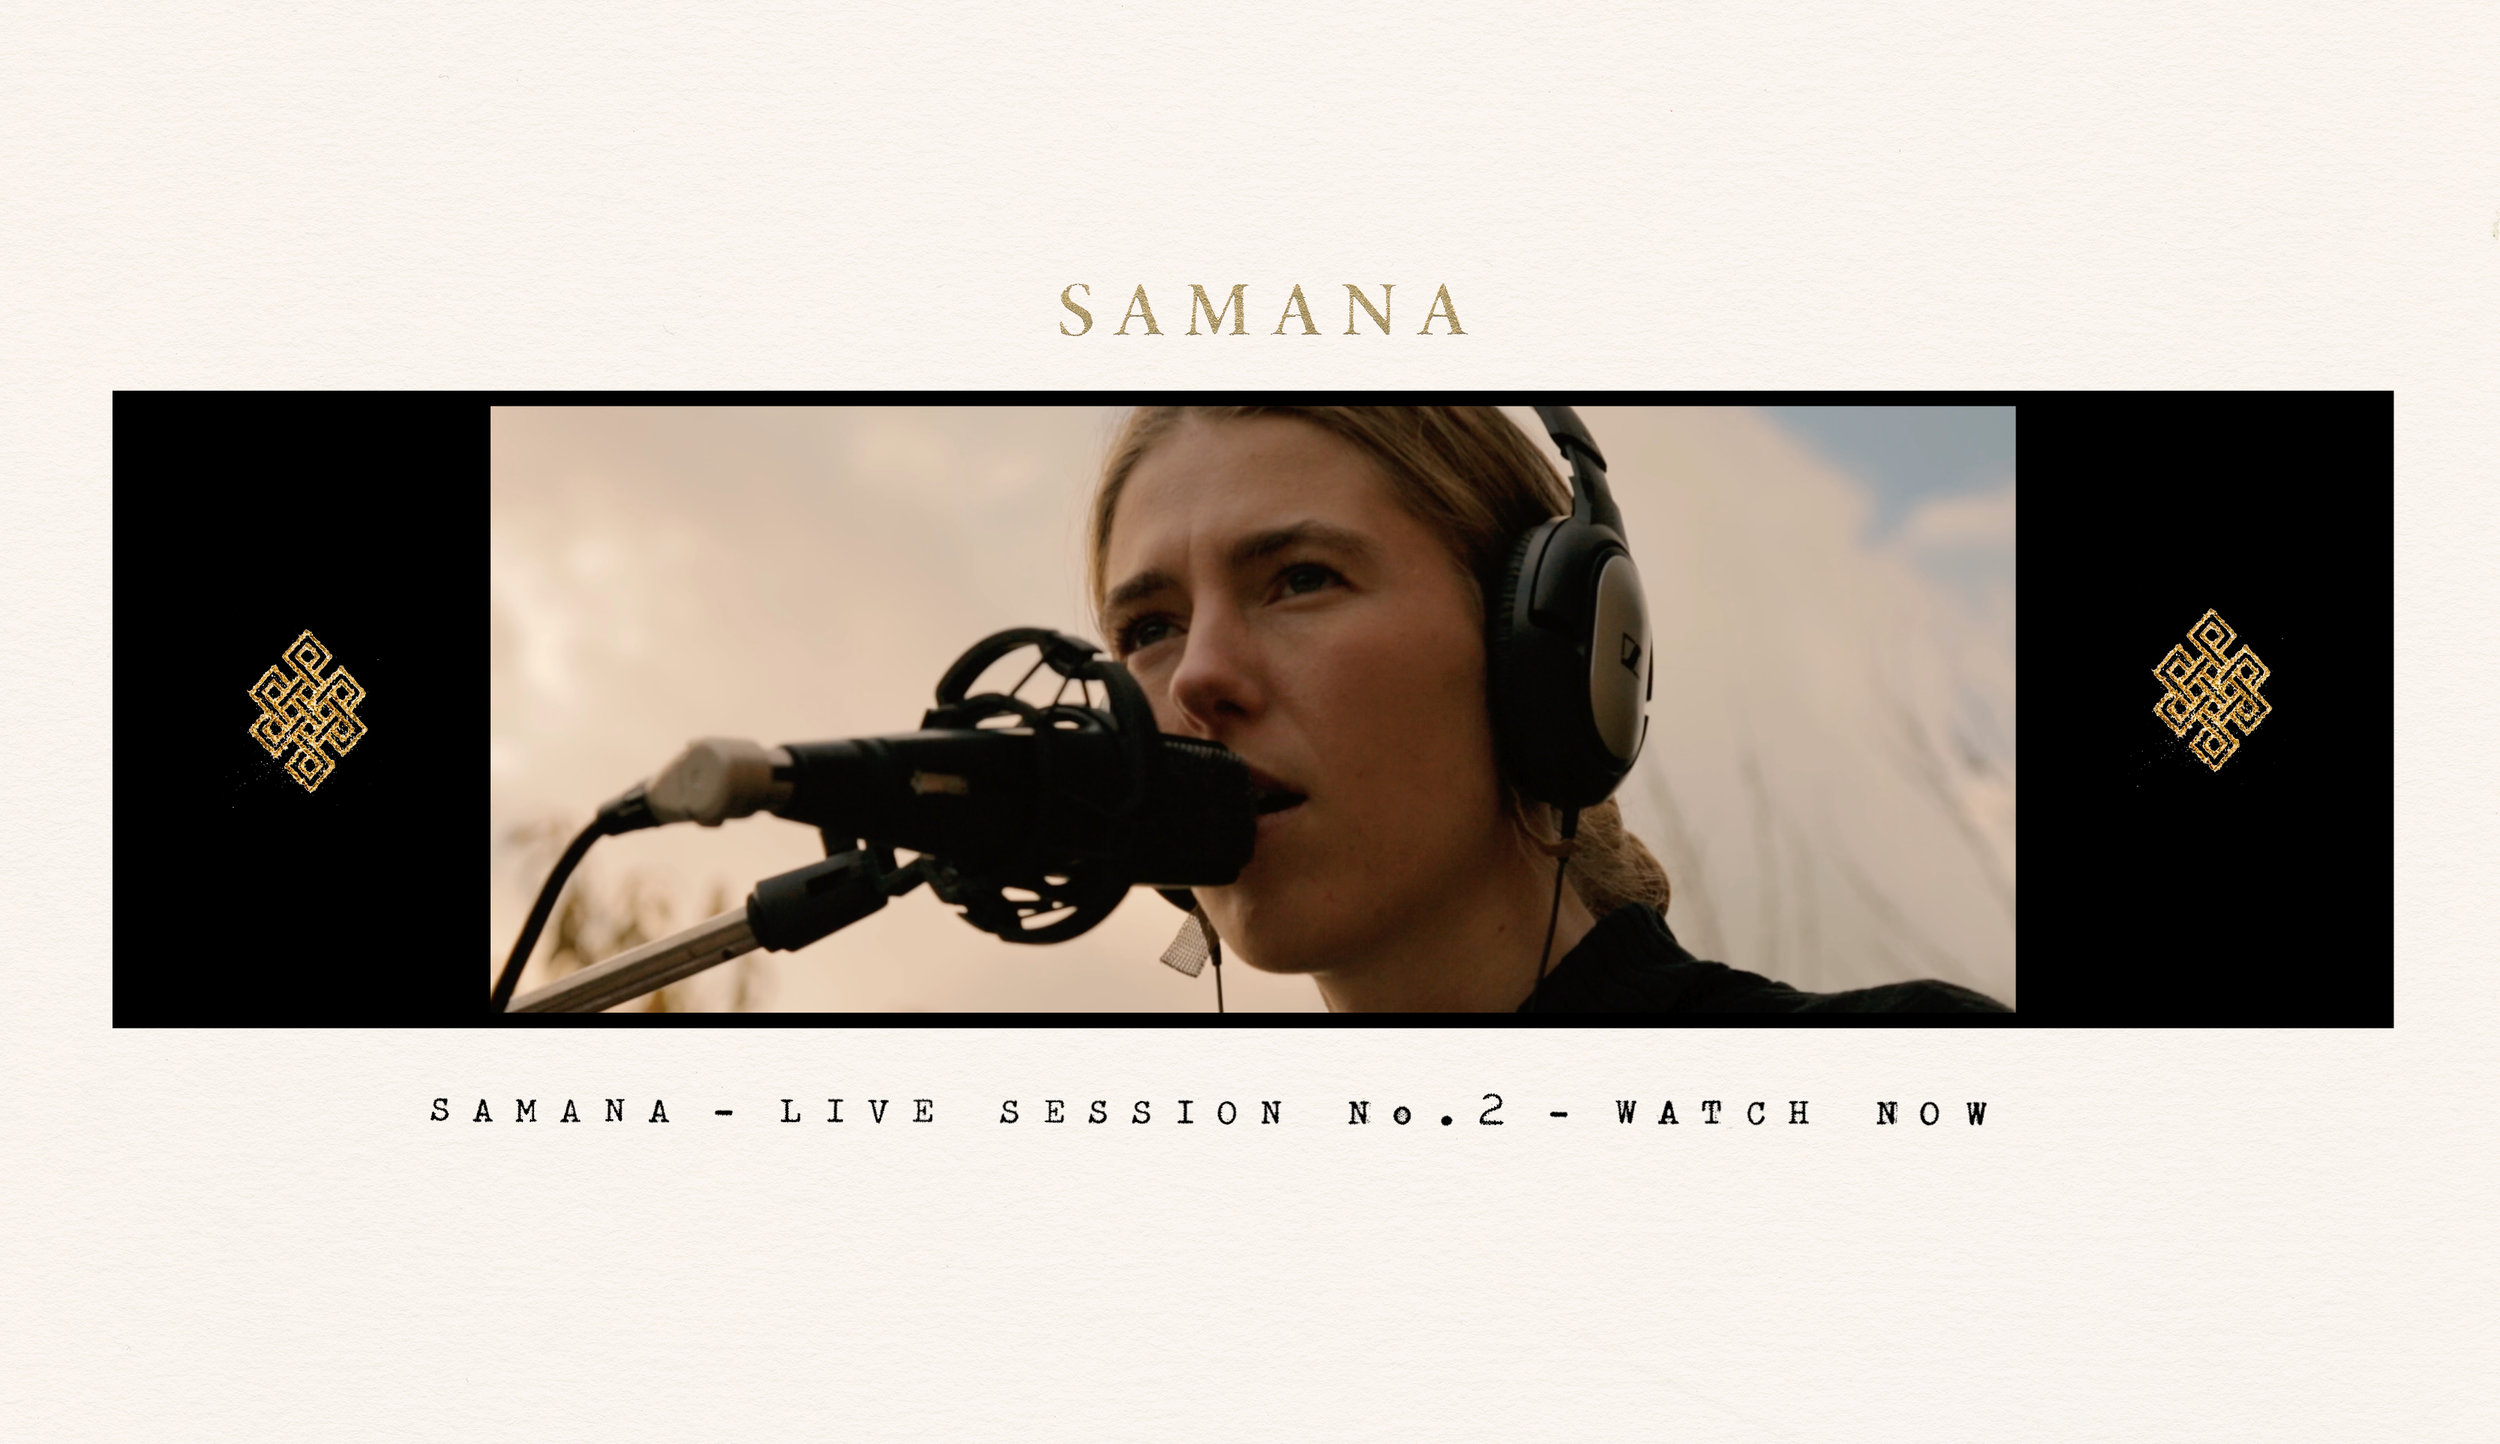 Samana, Live Session No.2, Samana Live, Samanamusic